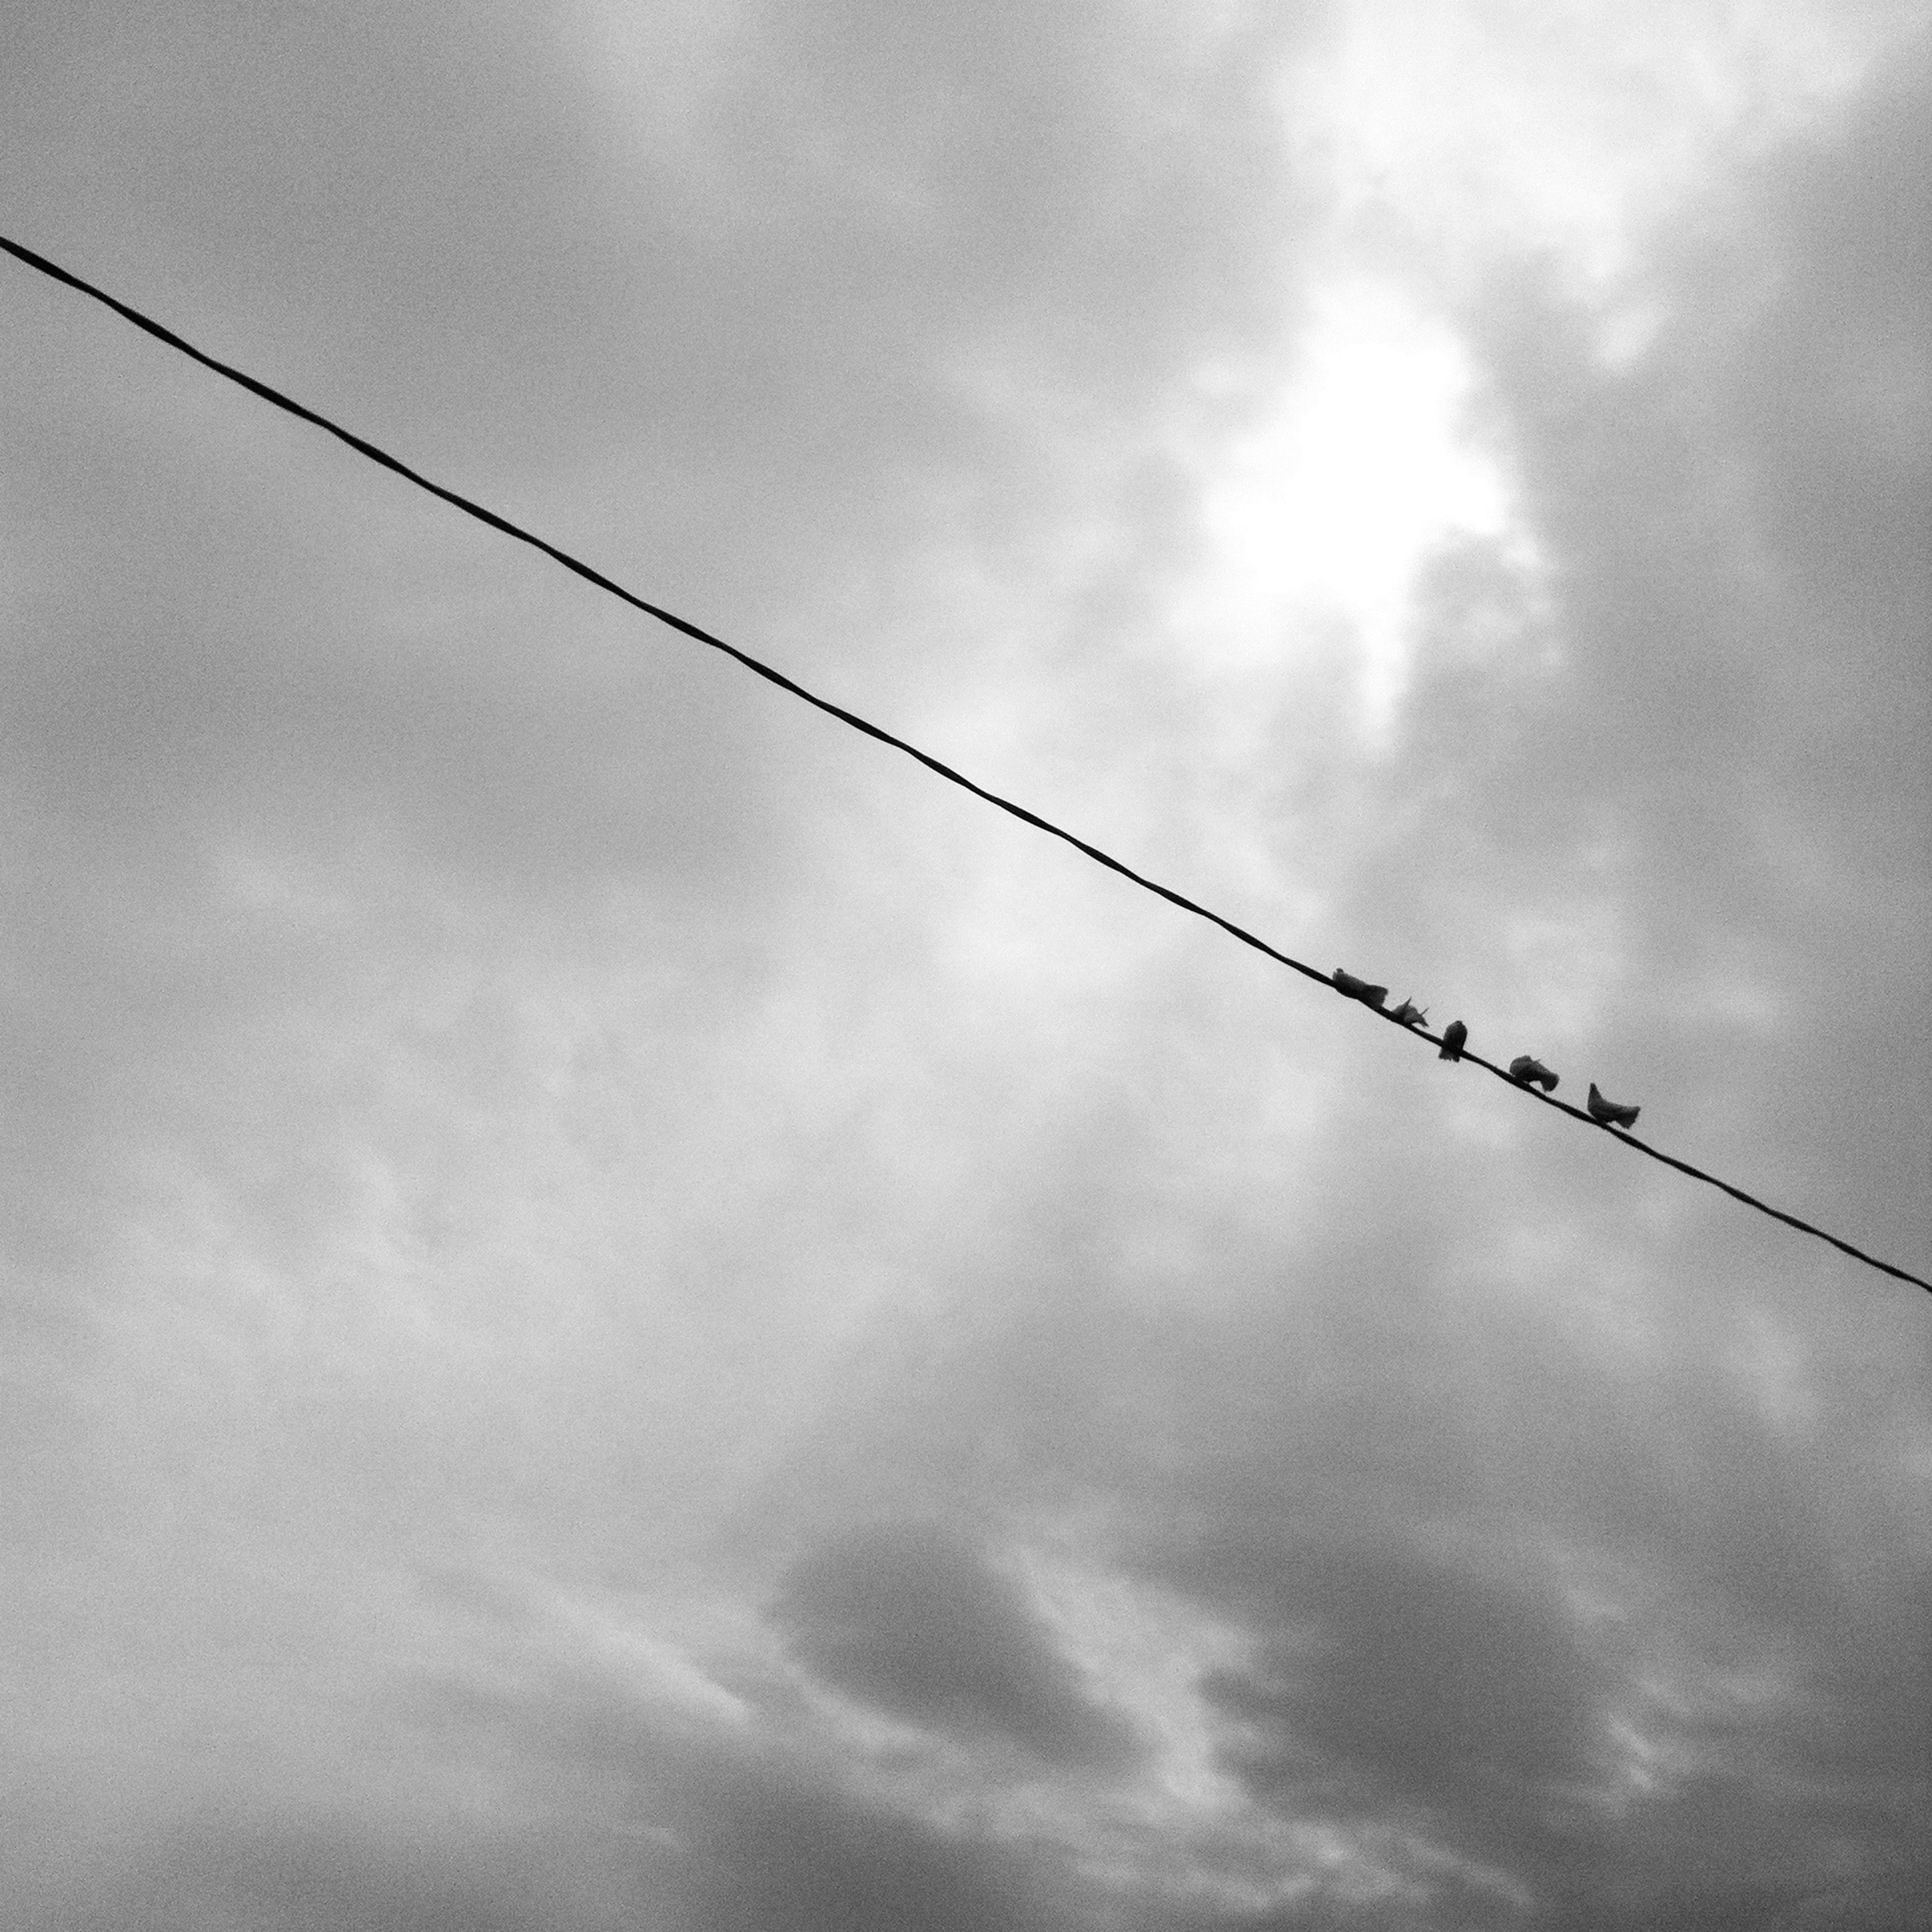 low angle view, sky, power line, cable, cloud - sky, cloudy, electricity, cloud, connection, bird, power supply, electricity pylon, nature, no people, silhouette, outdoors, day, hanging, power cable, animal themes